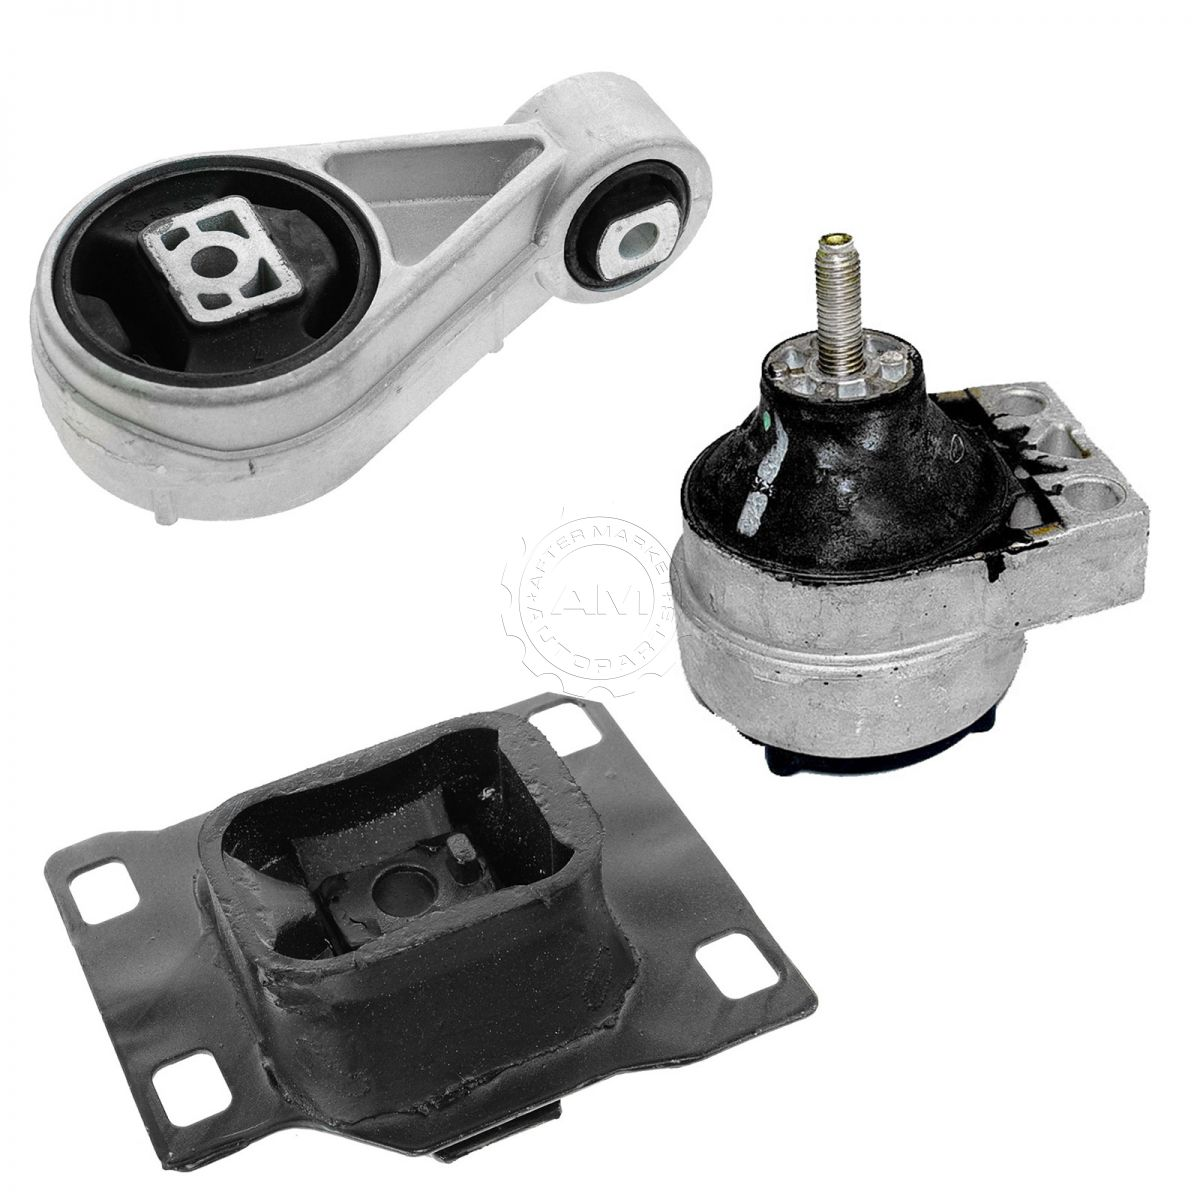 Motor Mounts Kit Compatible with 08-11 Ford Focus 2.0L Auto Automatic and Manual Trans Transmission AT MT 3pcs Set 2008 2009 2010 2011 Engine Mounts